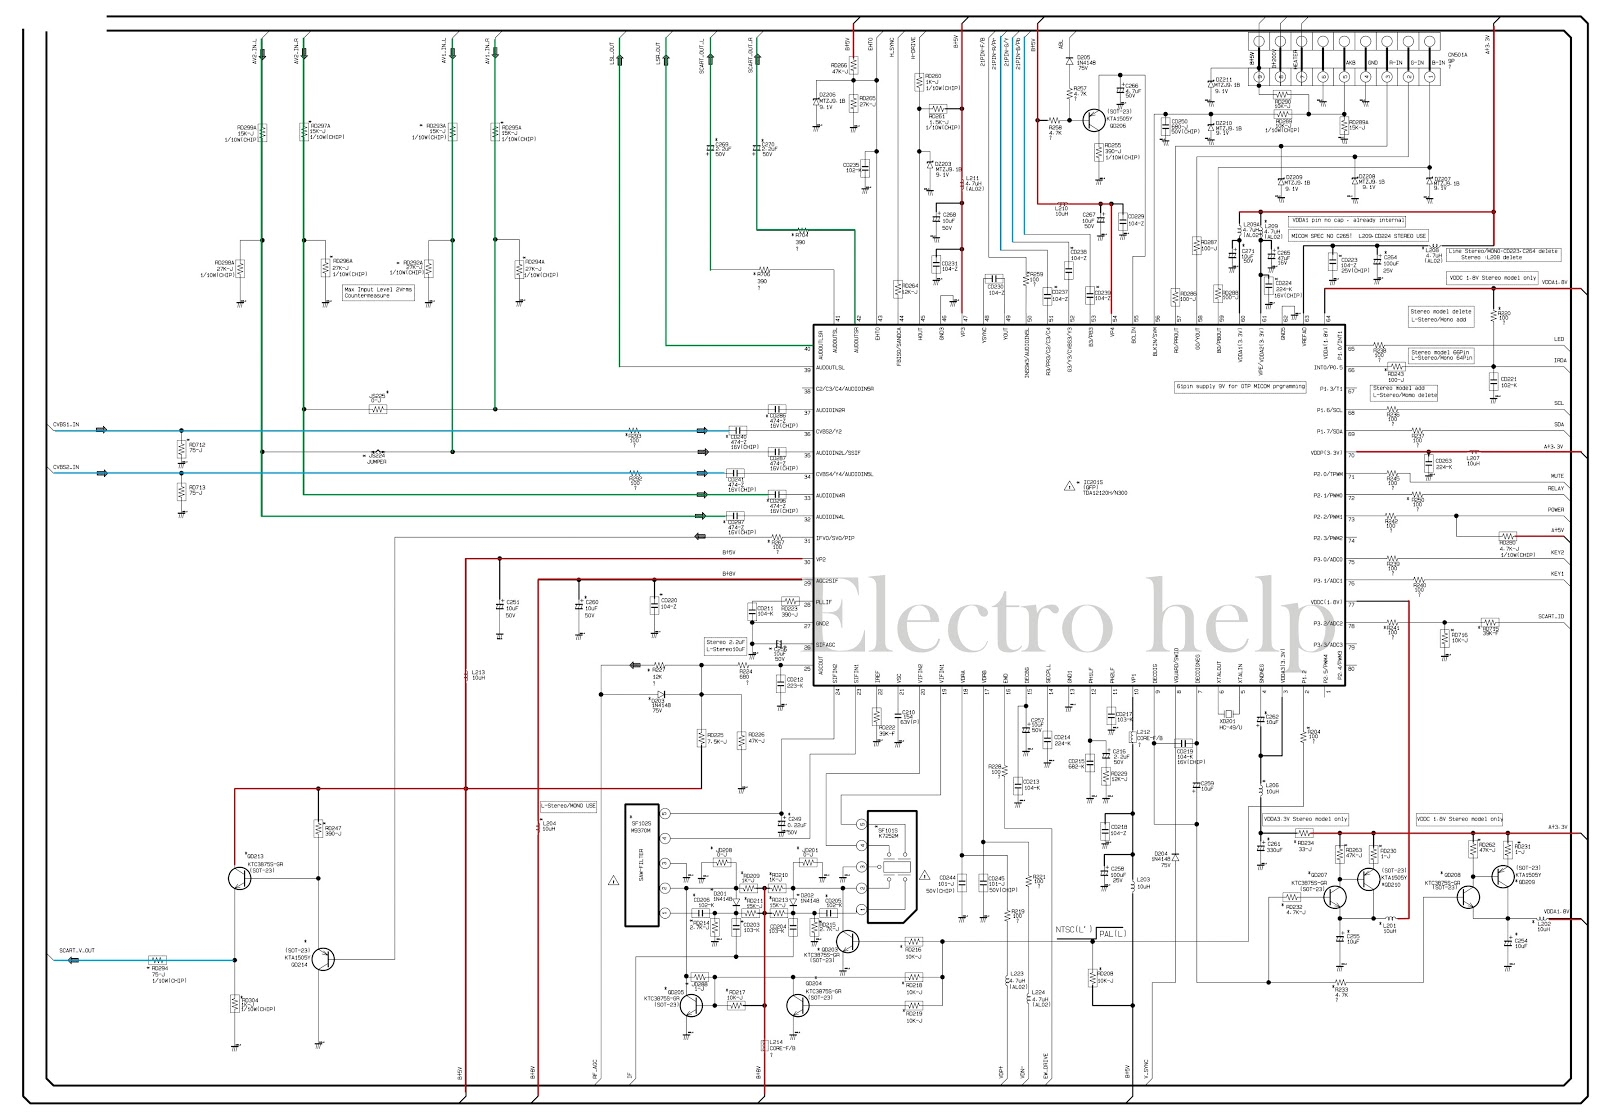 CL21A551 Samsung CRT TV – Circuit diagram